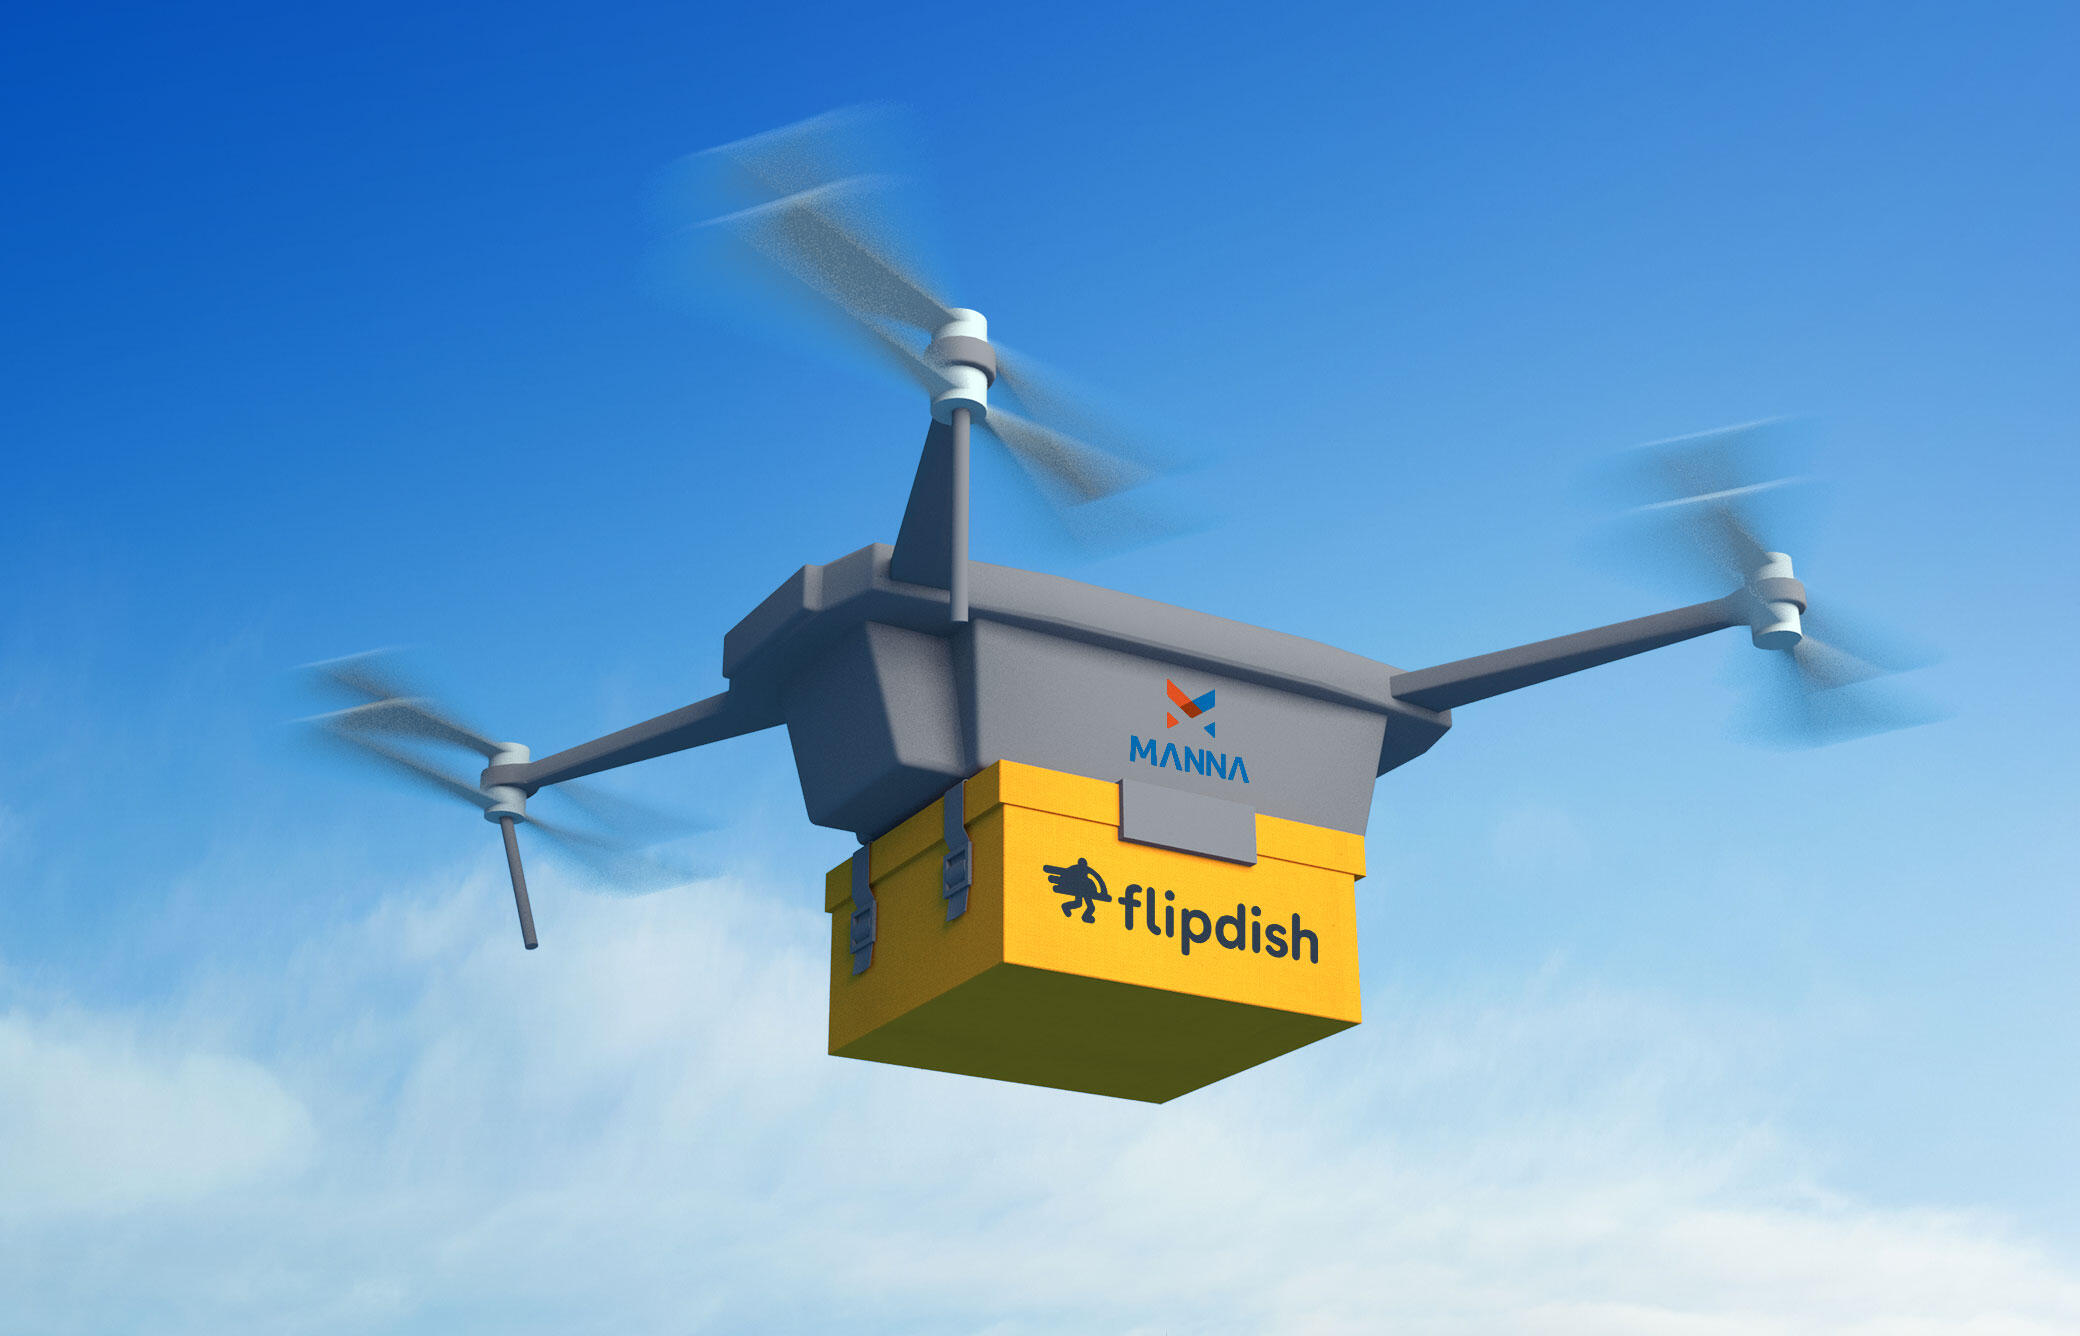 Manna-Flipdish drone delivery